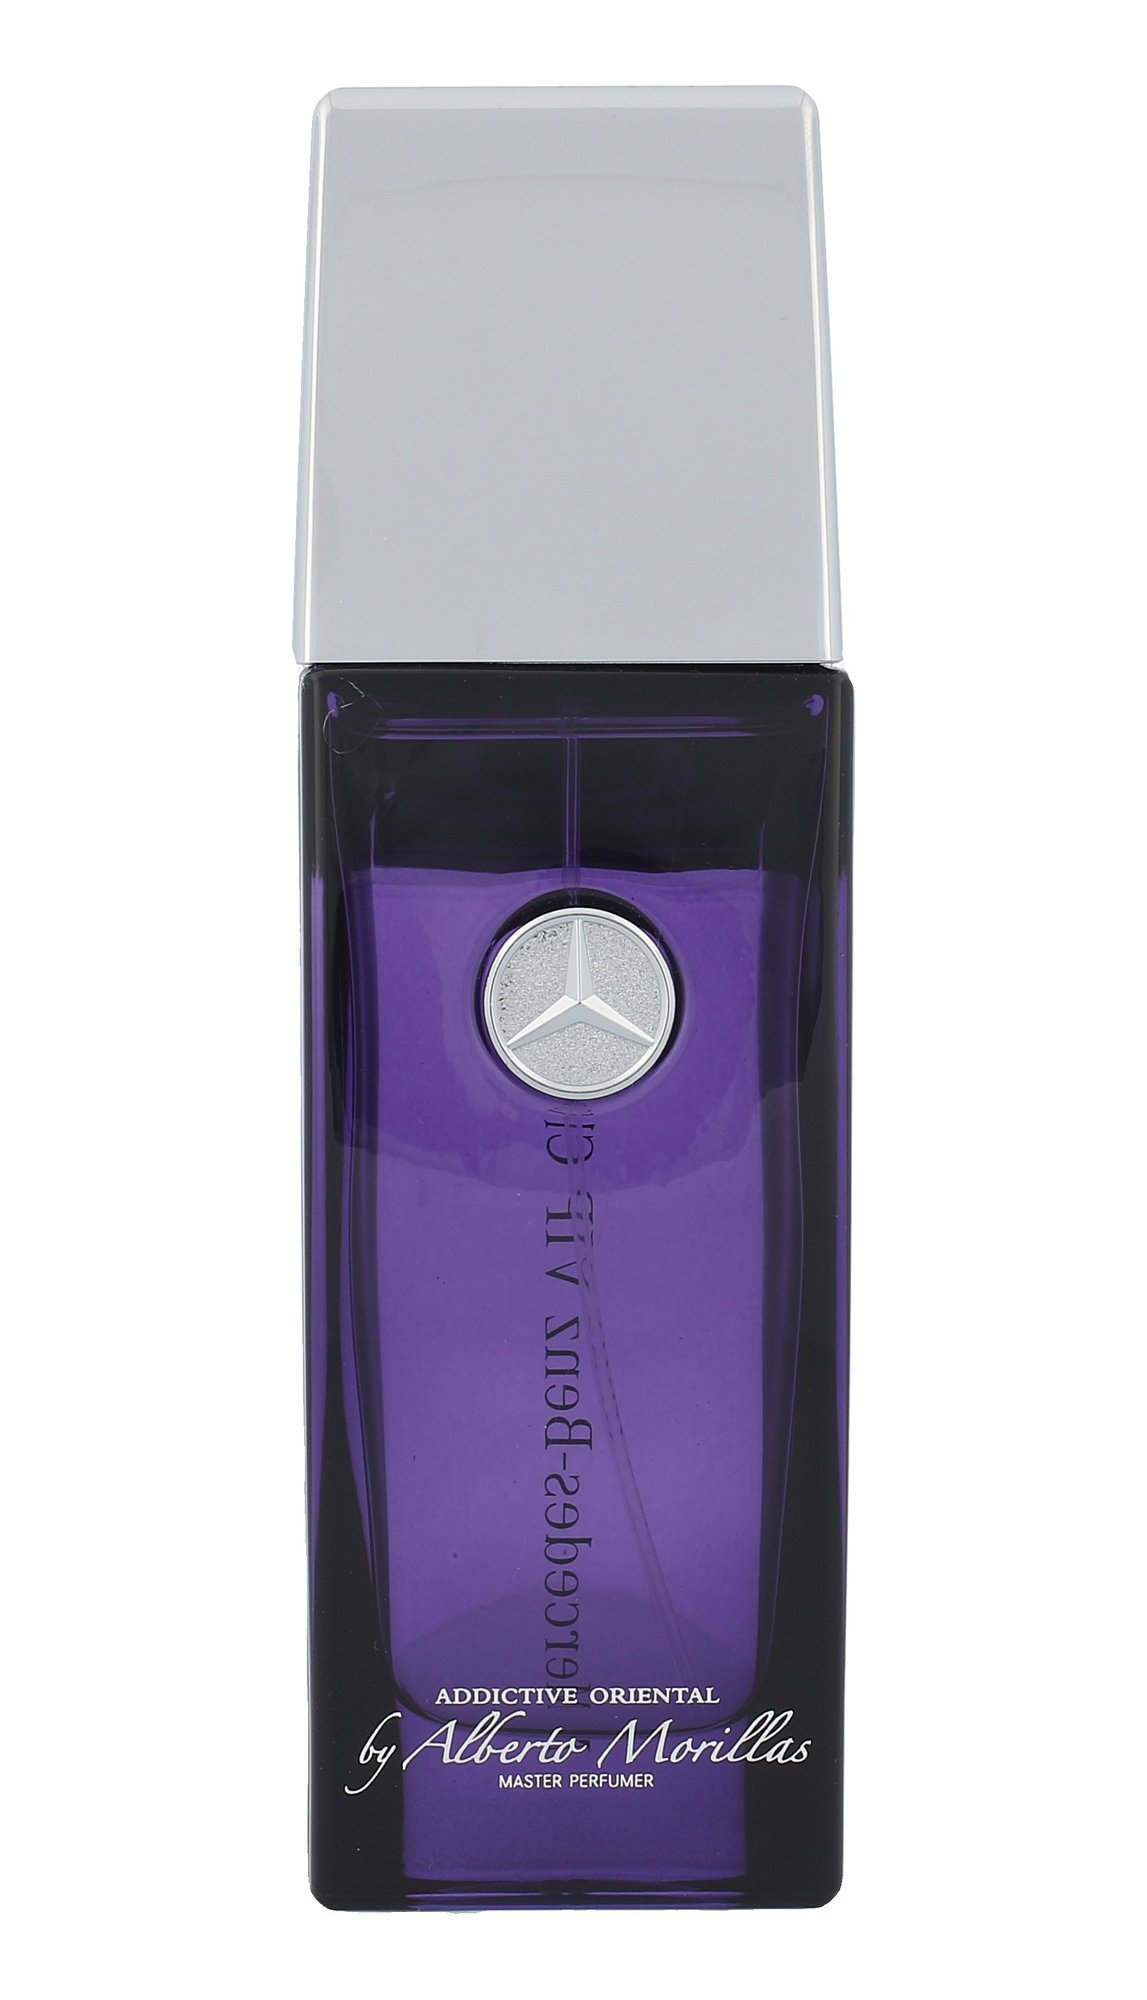 Mercedes-Benz Vip Club Addictive Oriental by Alberto Morillas EDT 100ml